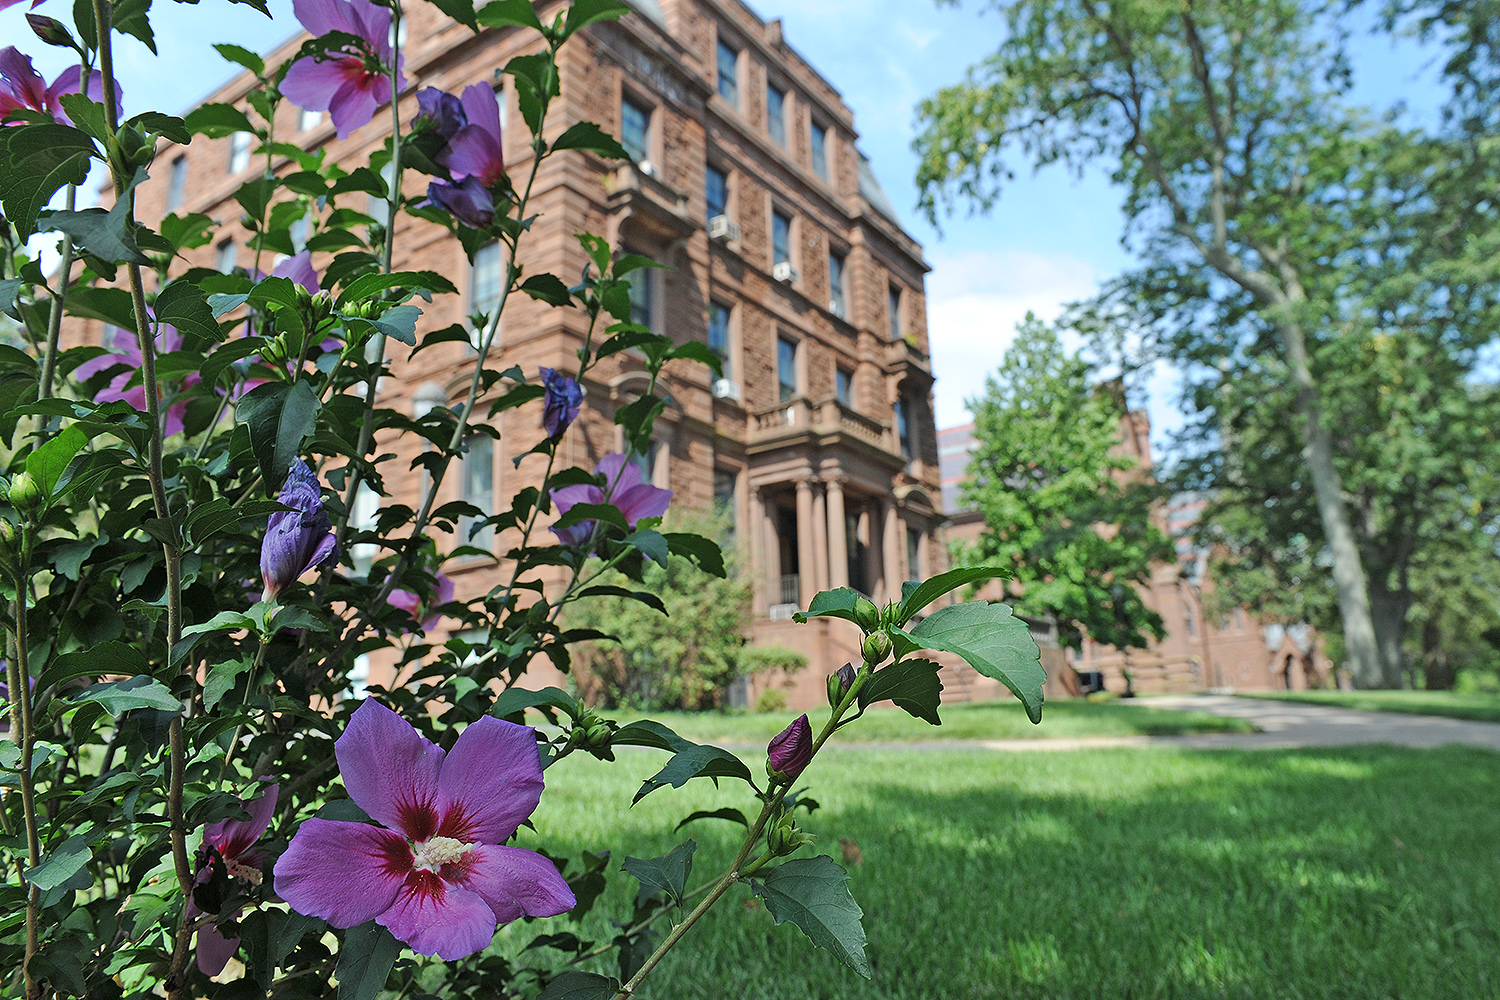 A Rose of Sharon, a deciduous flowering shrub, blooms near Judd Hall.